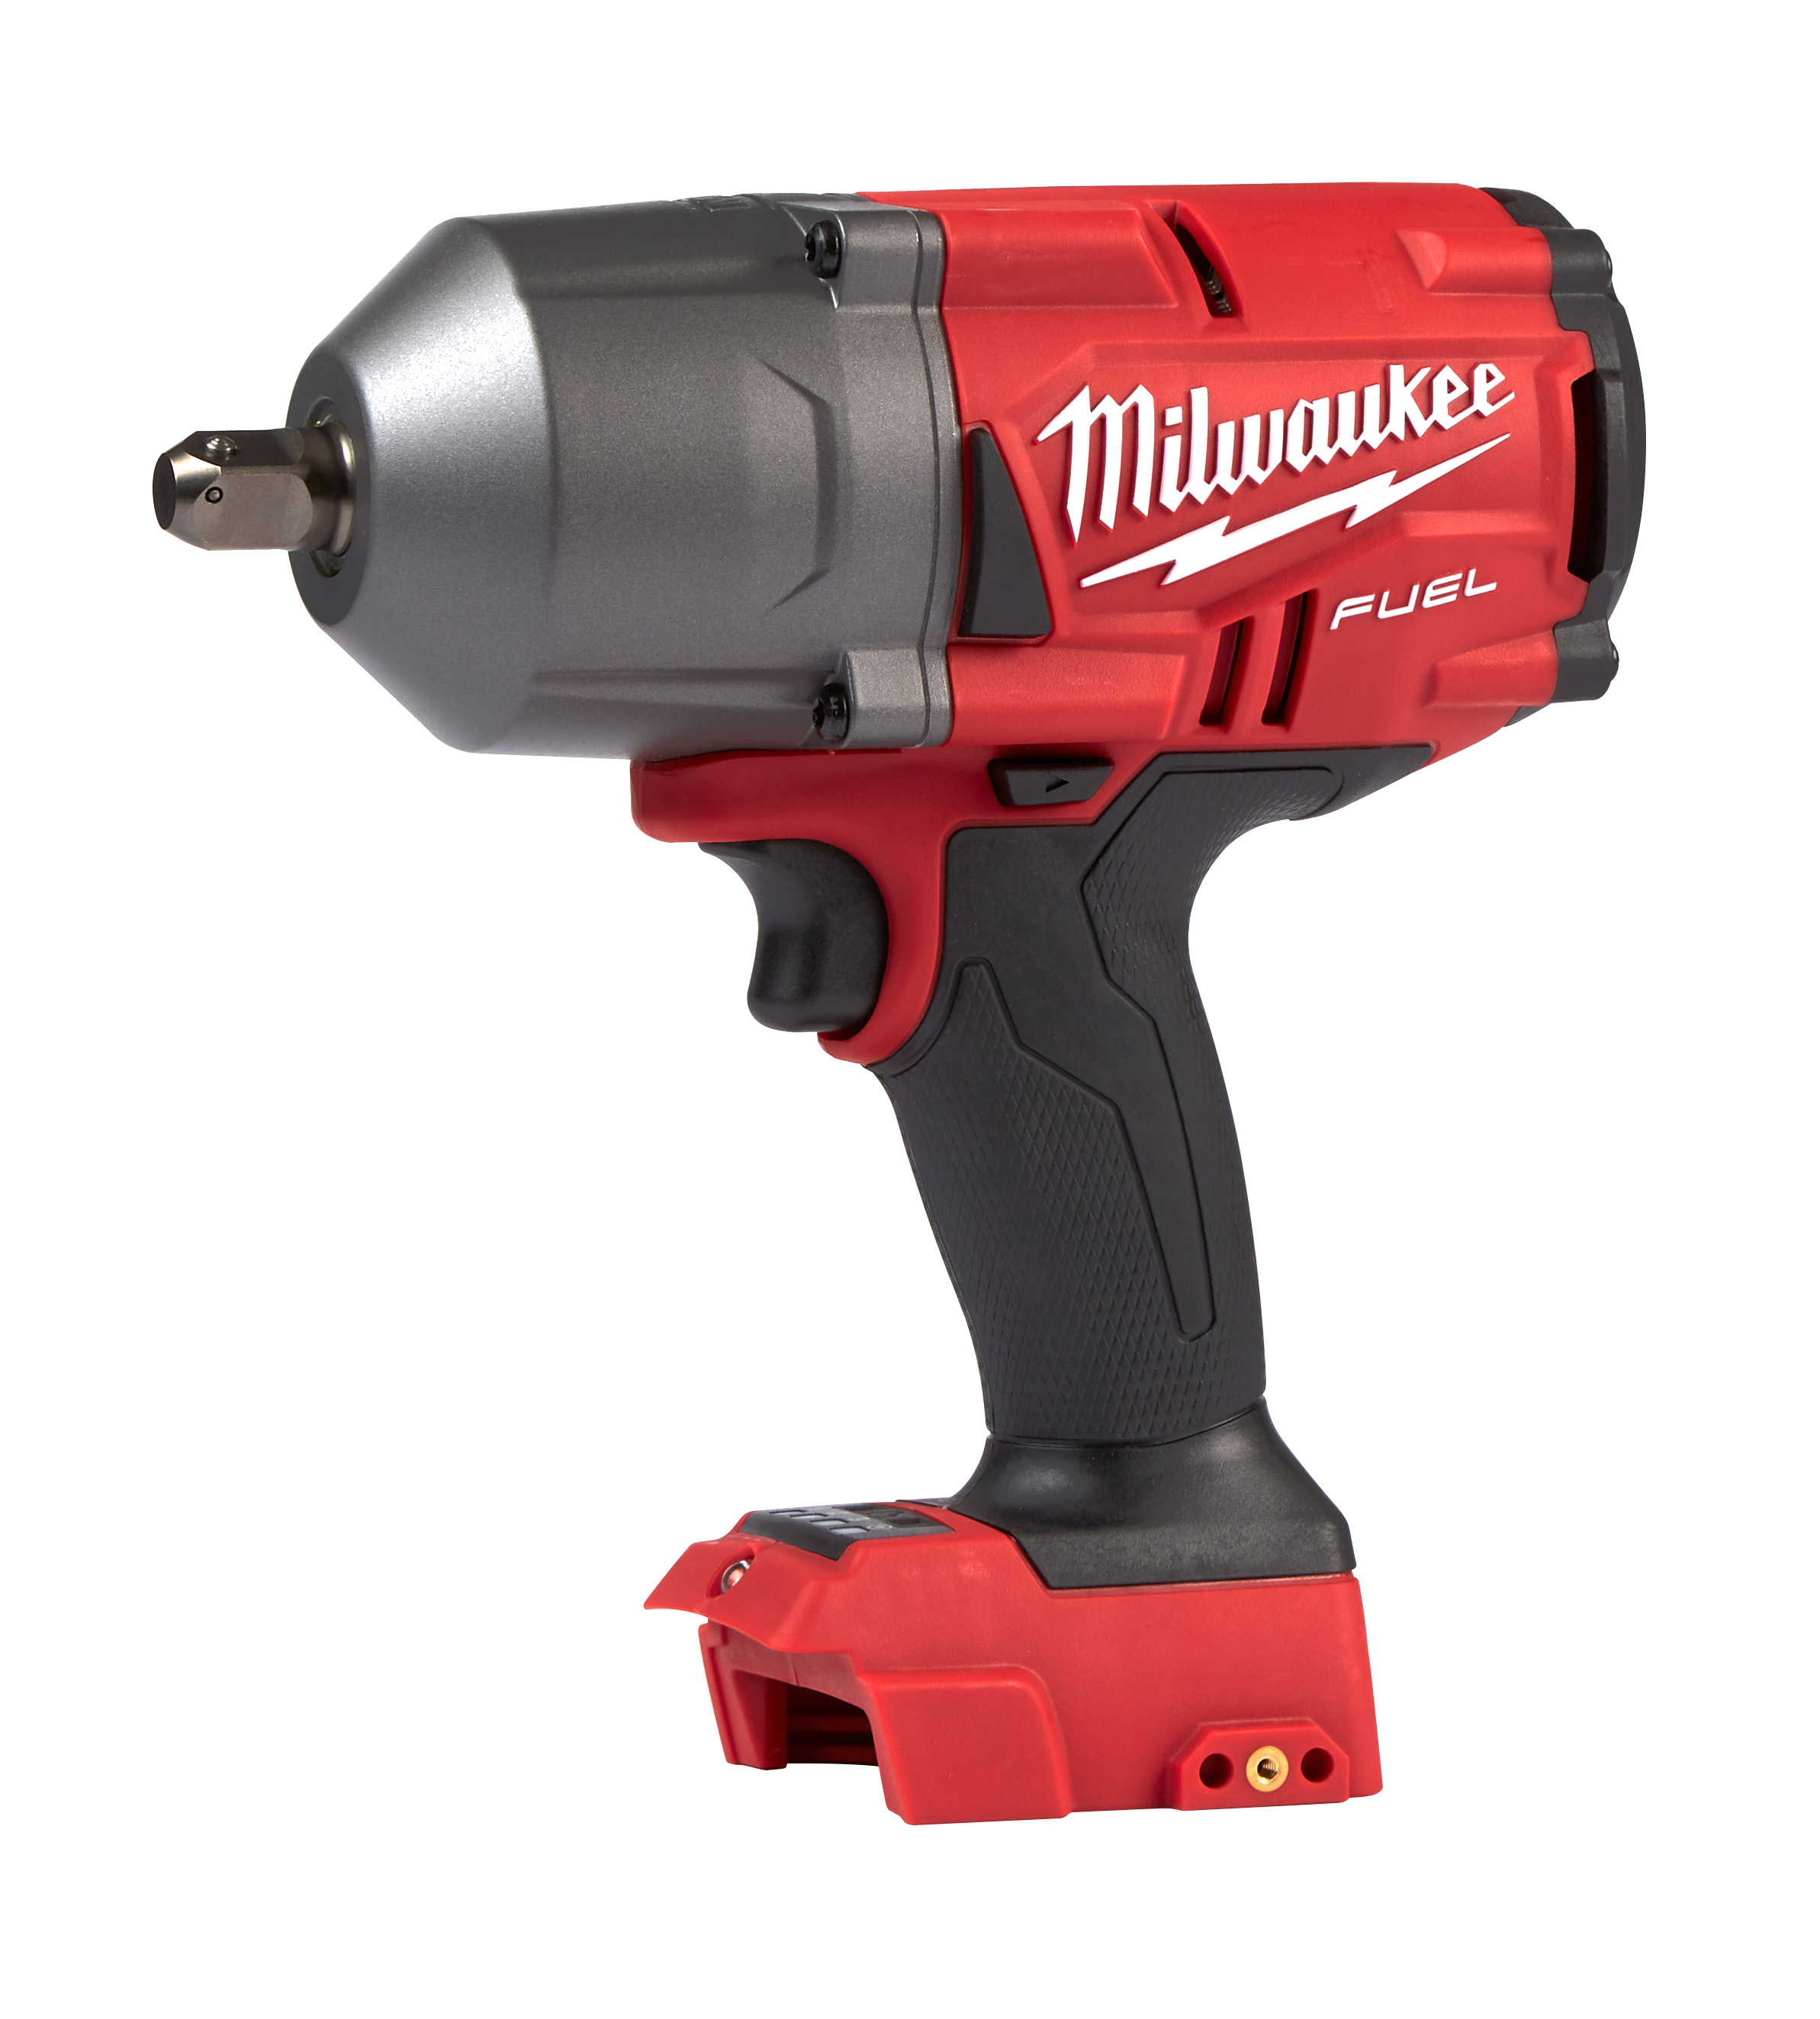 Milwaukee® M18™ FUEL™ 2766-20 Cordless Gen II High Torque Impact Wrench With 1/2 in Pin Detent Anvil, 1/2 in 4-Mode Straight Drive, 2400 bpm, 750/1100 ft-lb Torque, 18 VDC, 9-3/4 in OAL